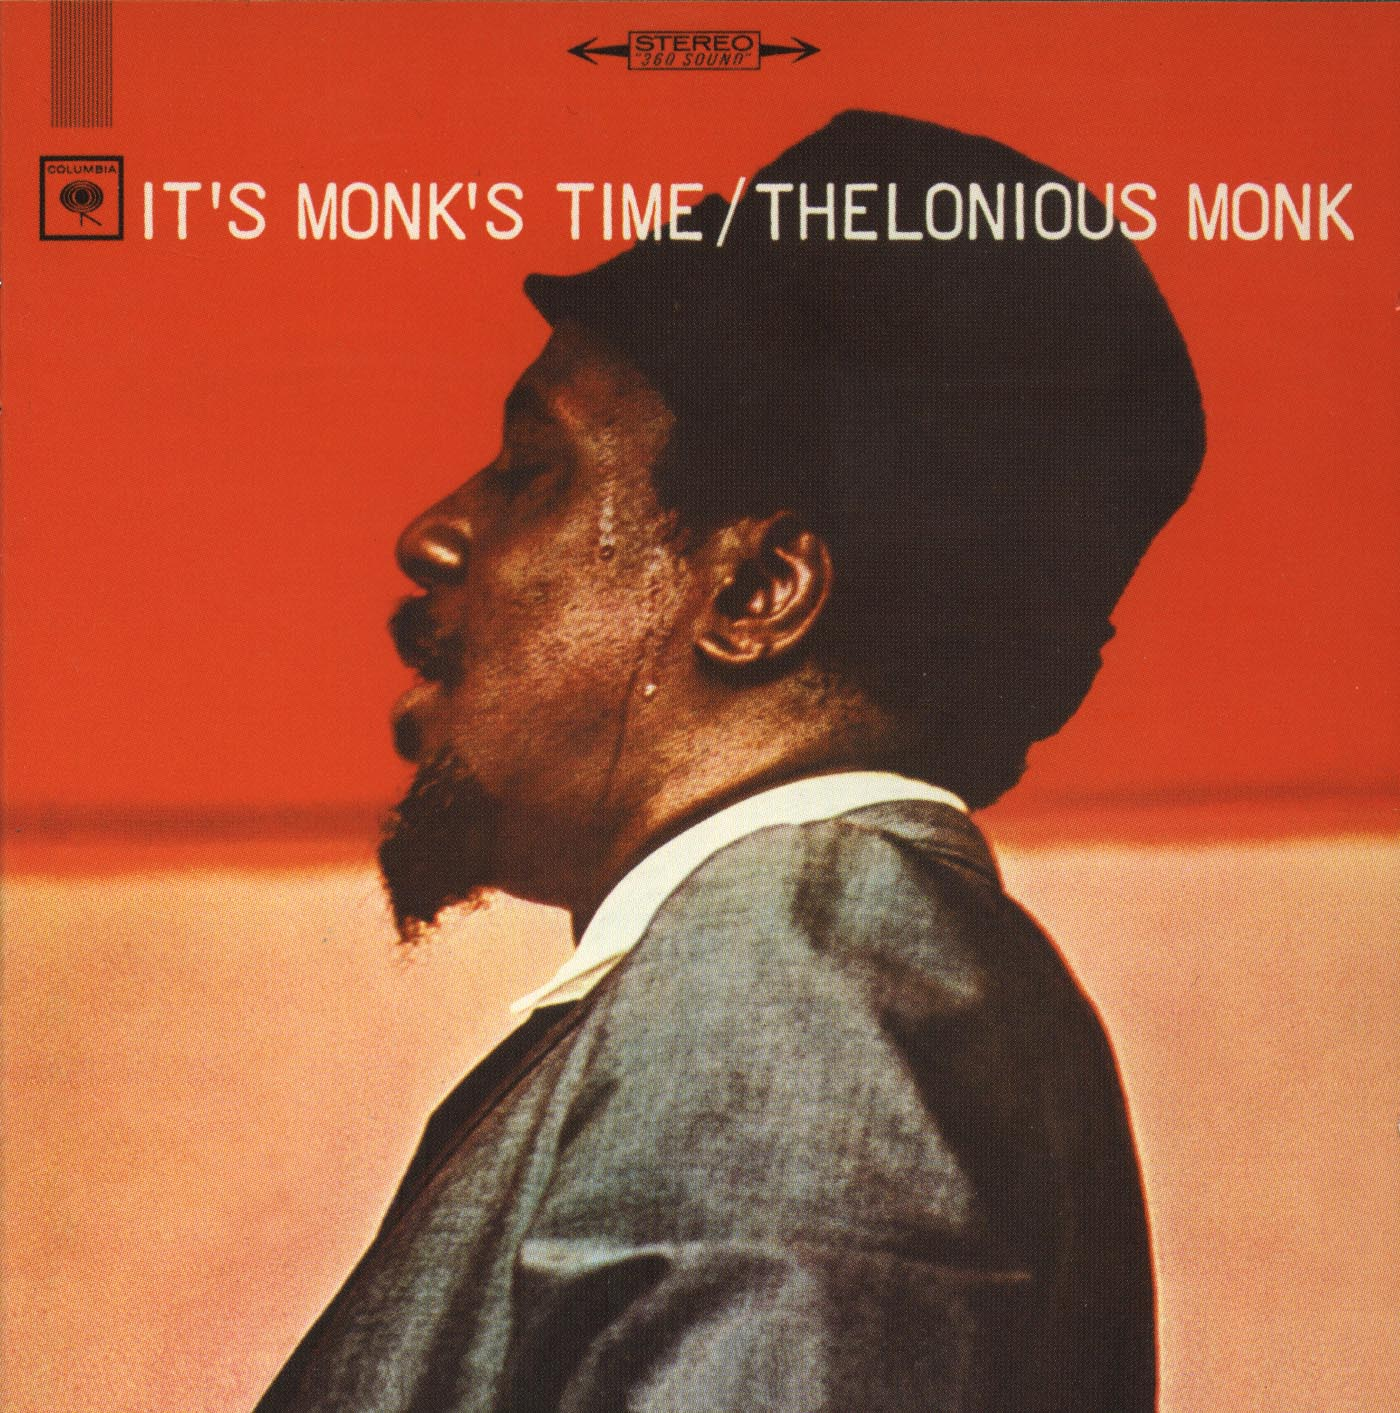 thelonious monk - it's monk's time (sleeve art)